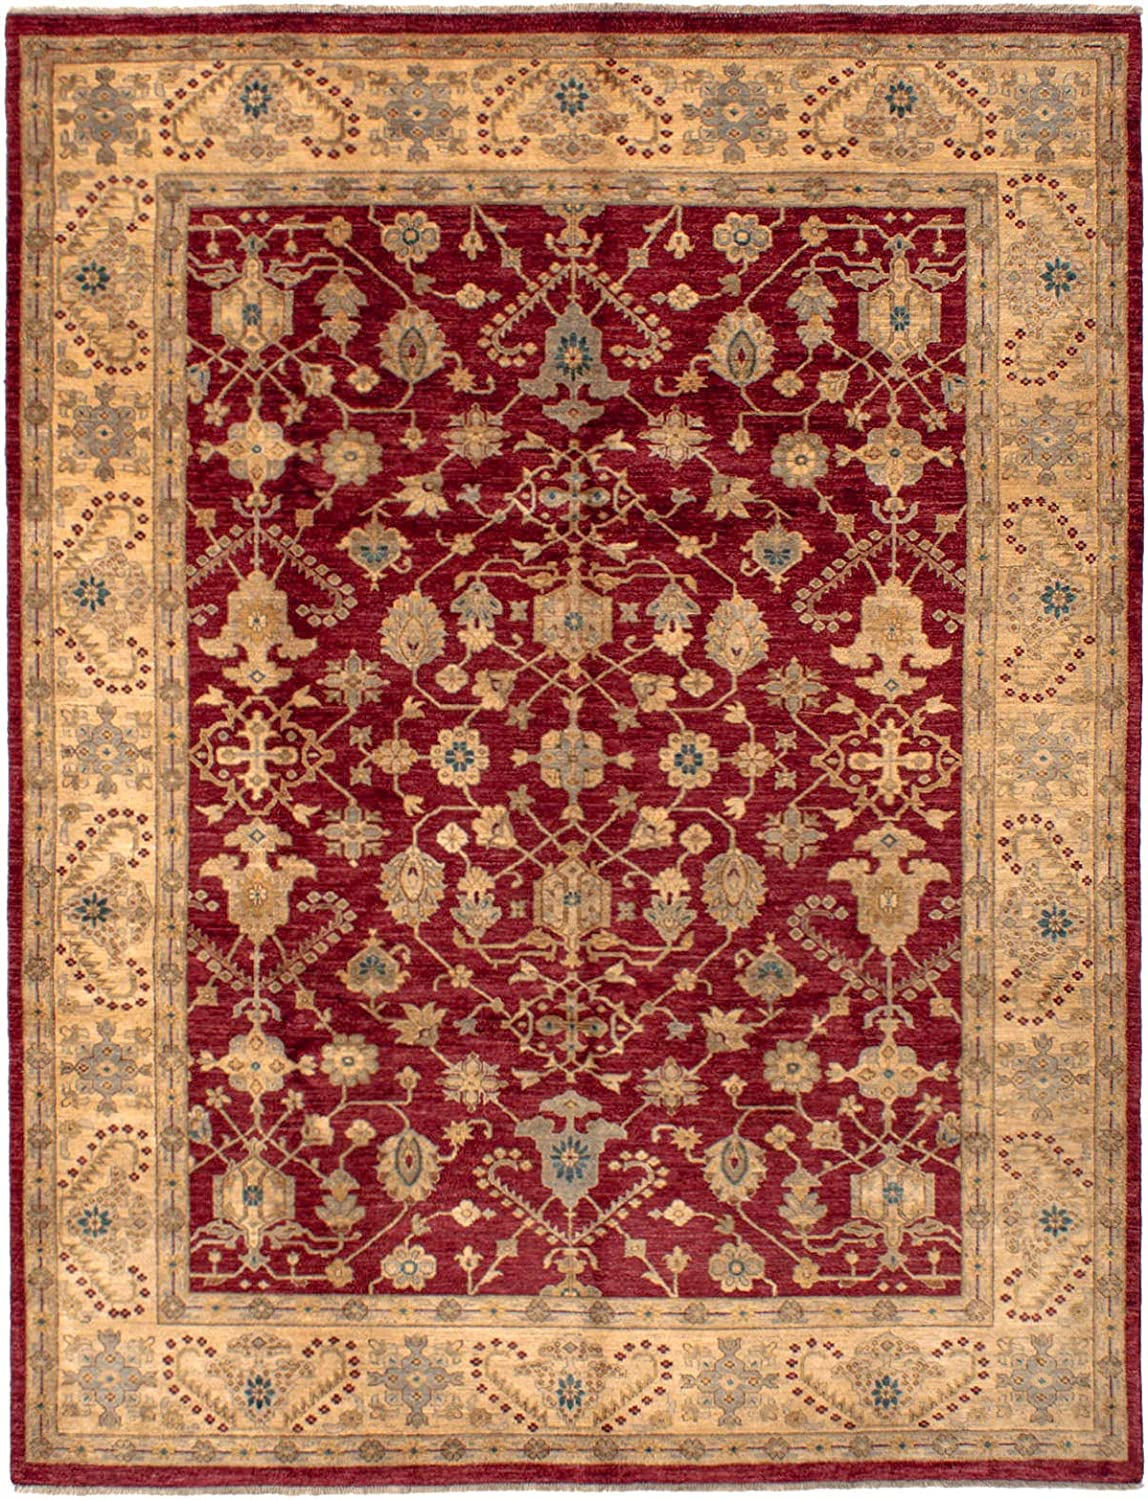 Amazon Com Ecarpet Gallery Large Area Rug For Living Room Bedroom Hand Knotted Wool Rug Chobi Finest Bordered Red Rug 8 0 X 10 5 286200 Furniture Decor